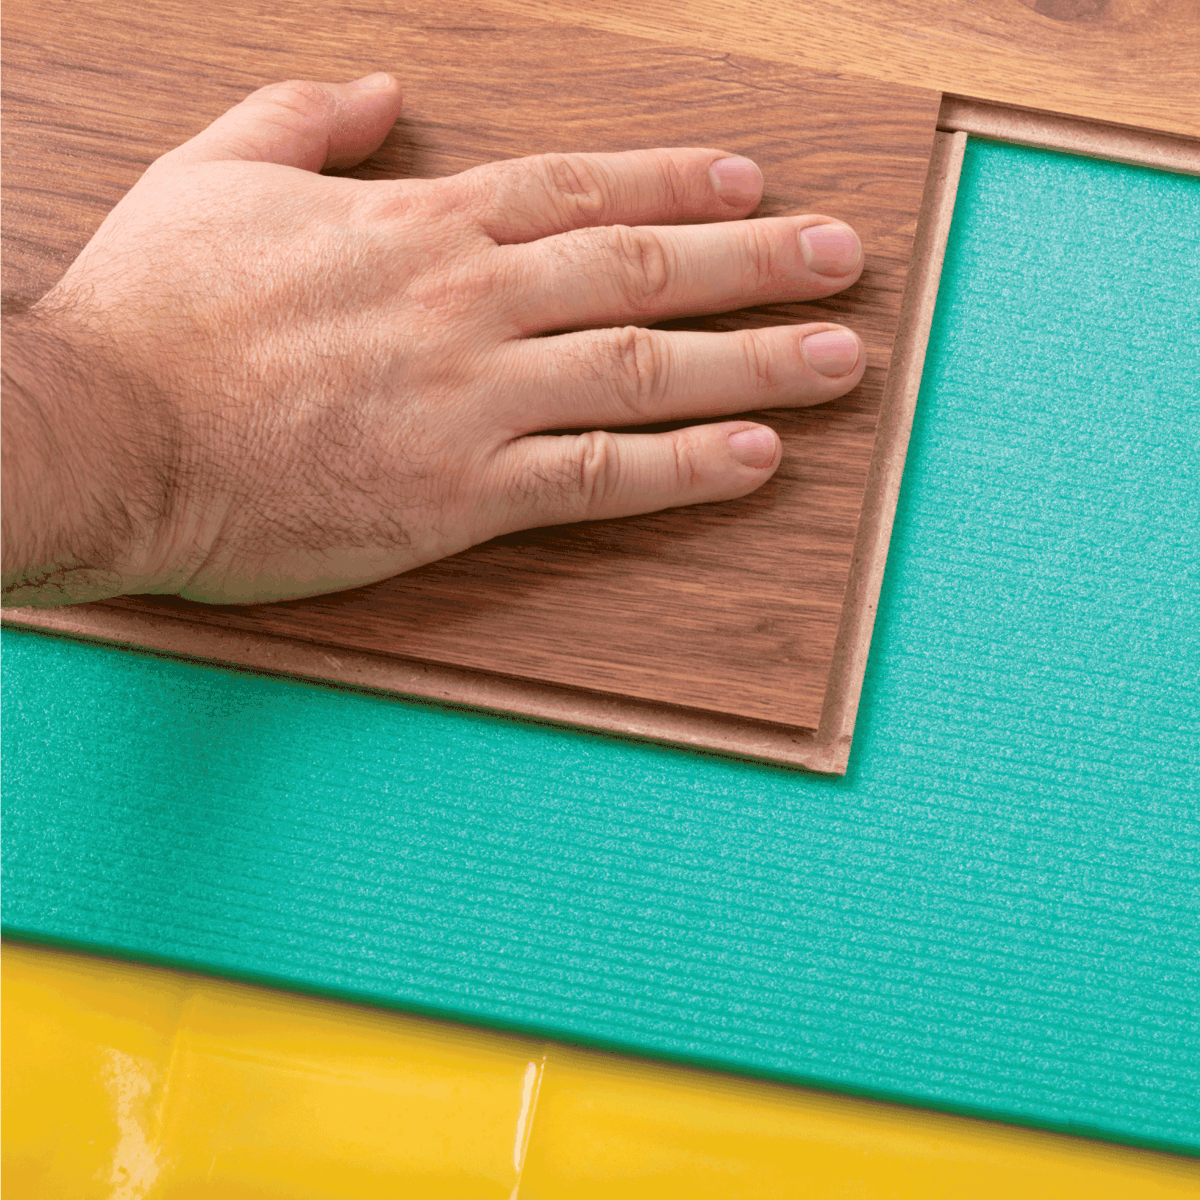 Laying Laminate Flooring. Yellow film vapor barrier and green foam underlayments. Person's hand seen putting the planks together